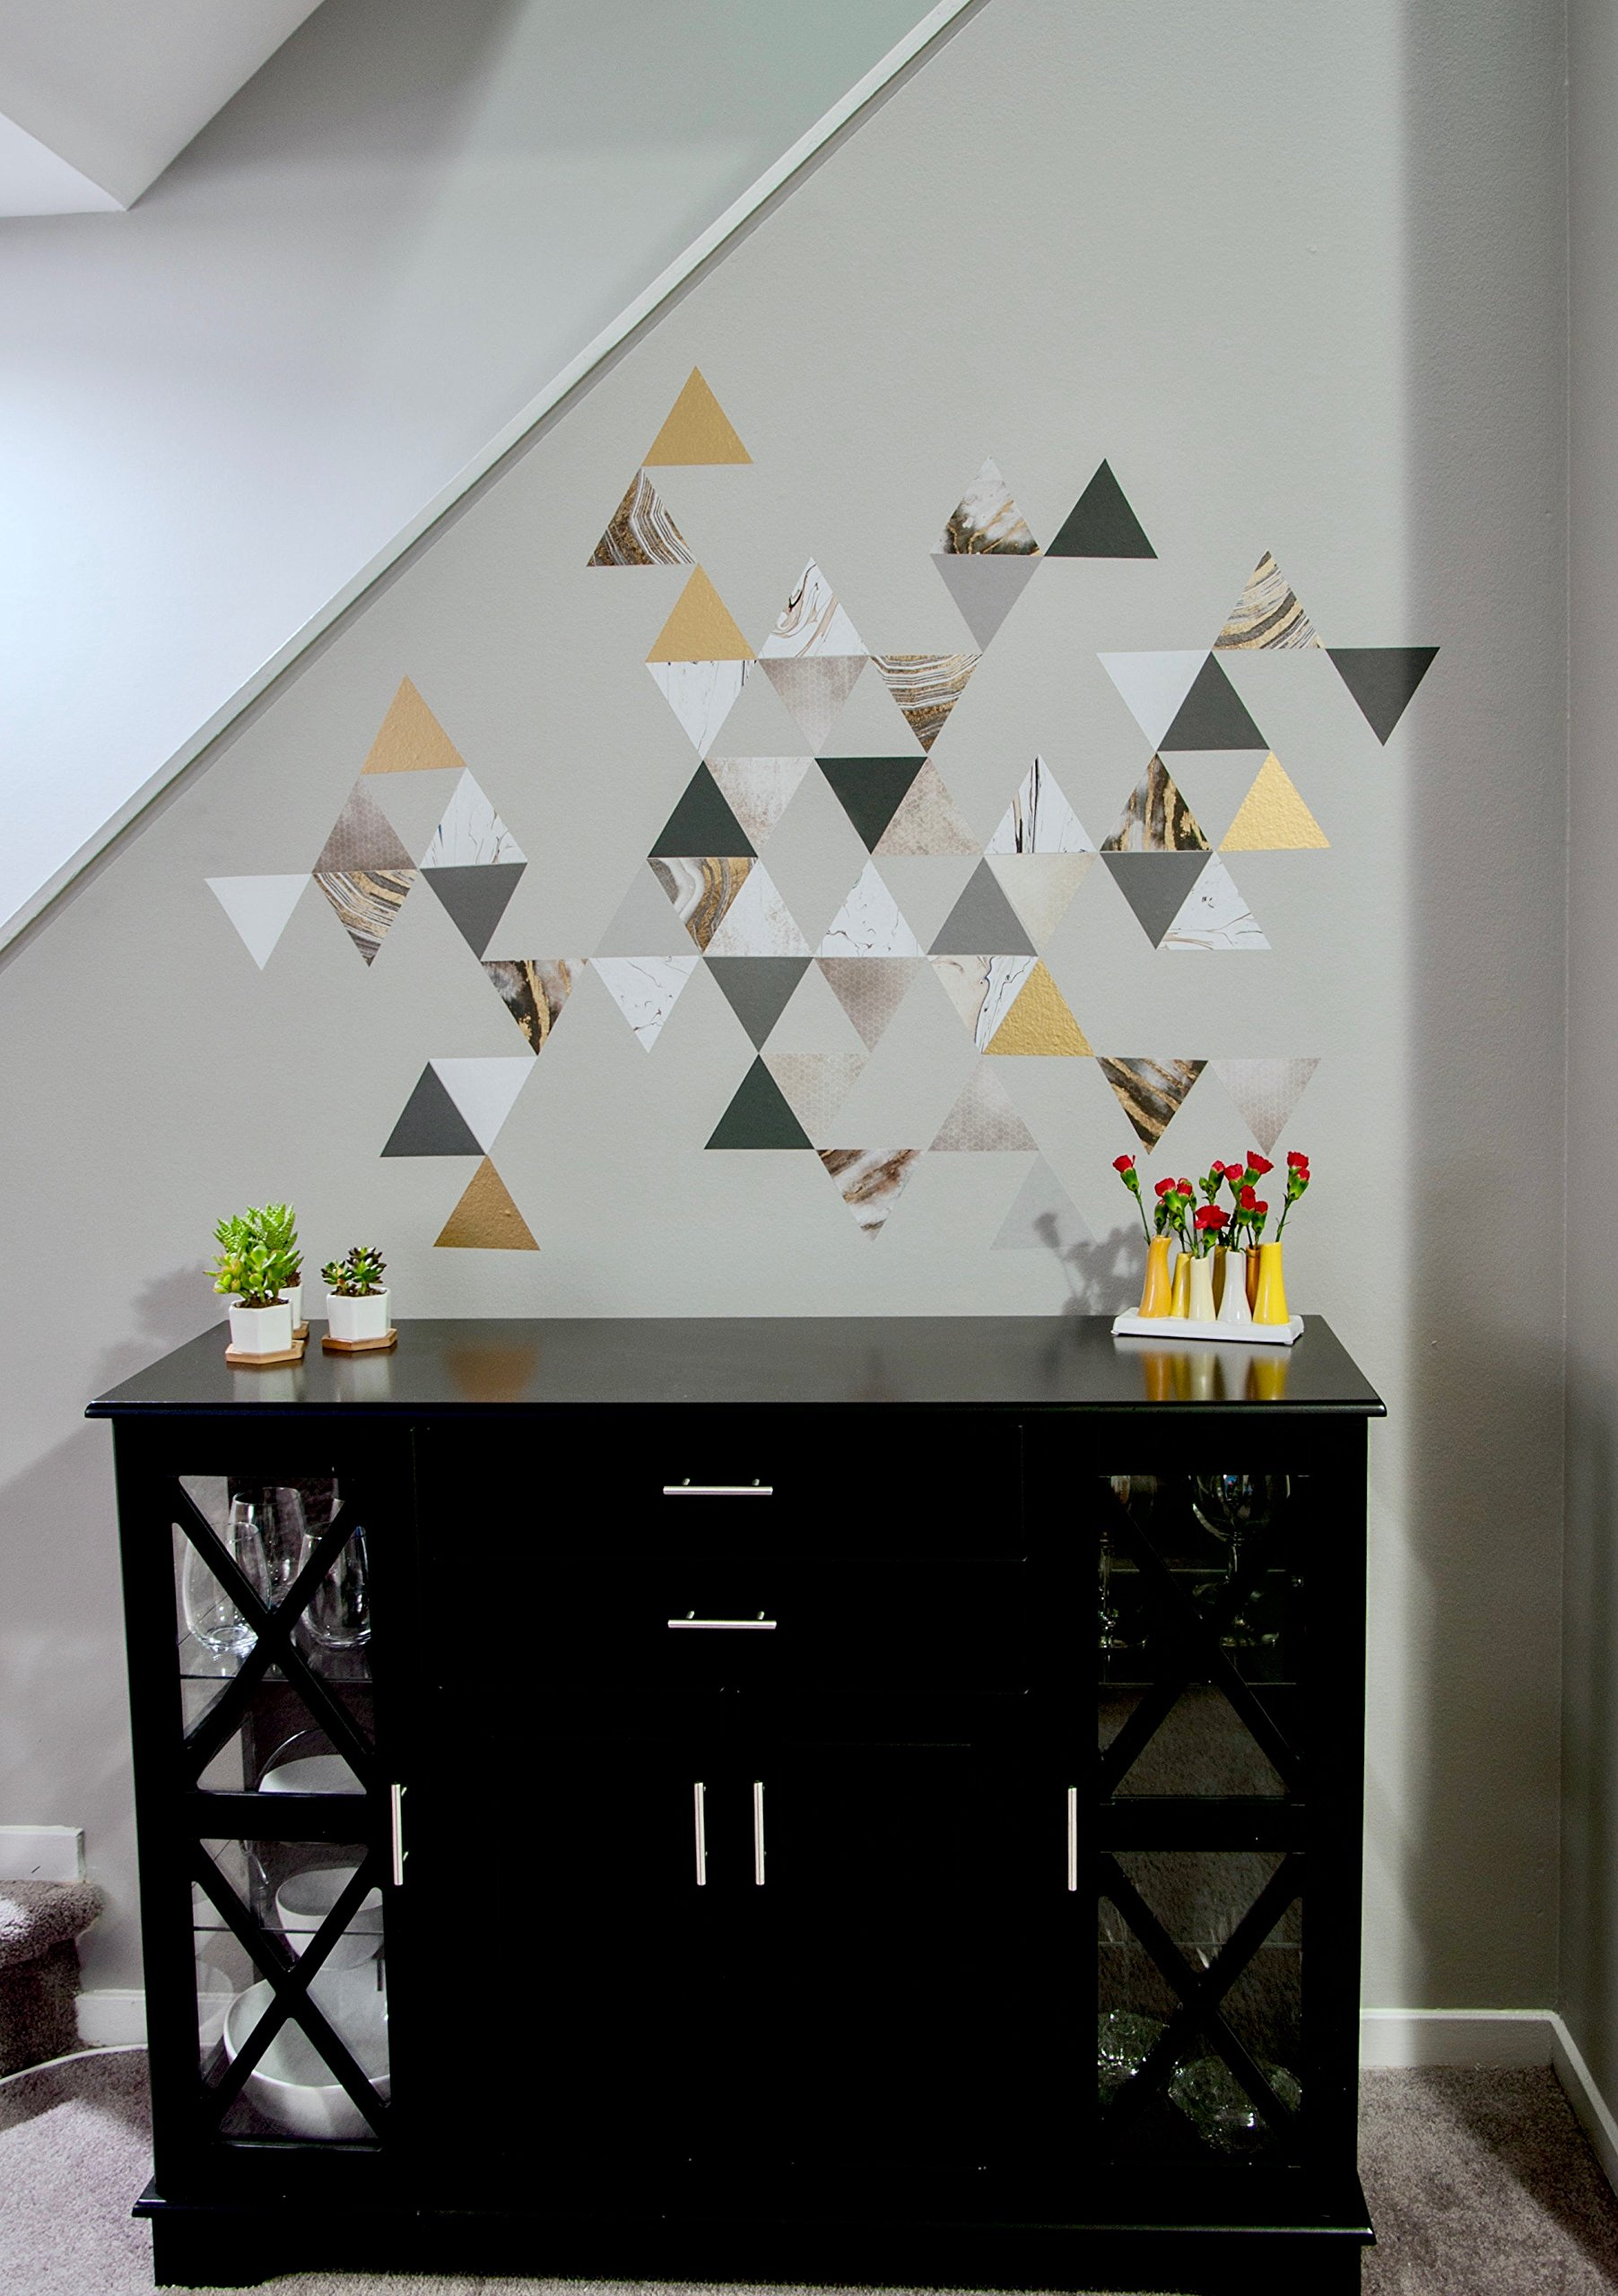 Modern Art Wall Decals, Gold, Gray, Marble, Triangles, Geometric Decals, Repositionable, Fabric Wall Decals Plus 6 Bonus Metallic Gold Triangle Vinyl Decals by Wall Dressed Up (Image #7)